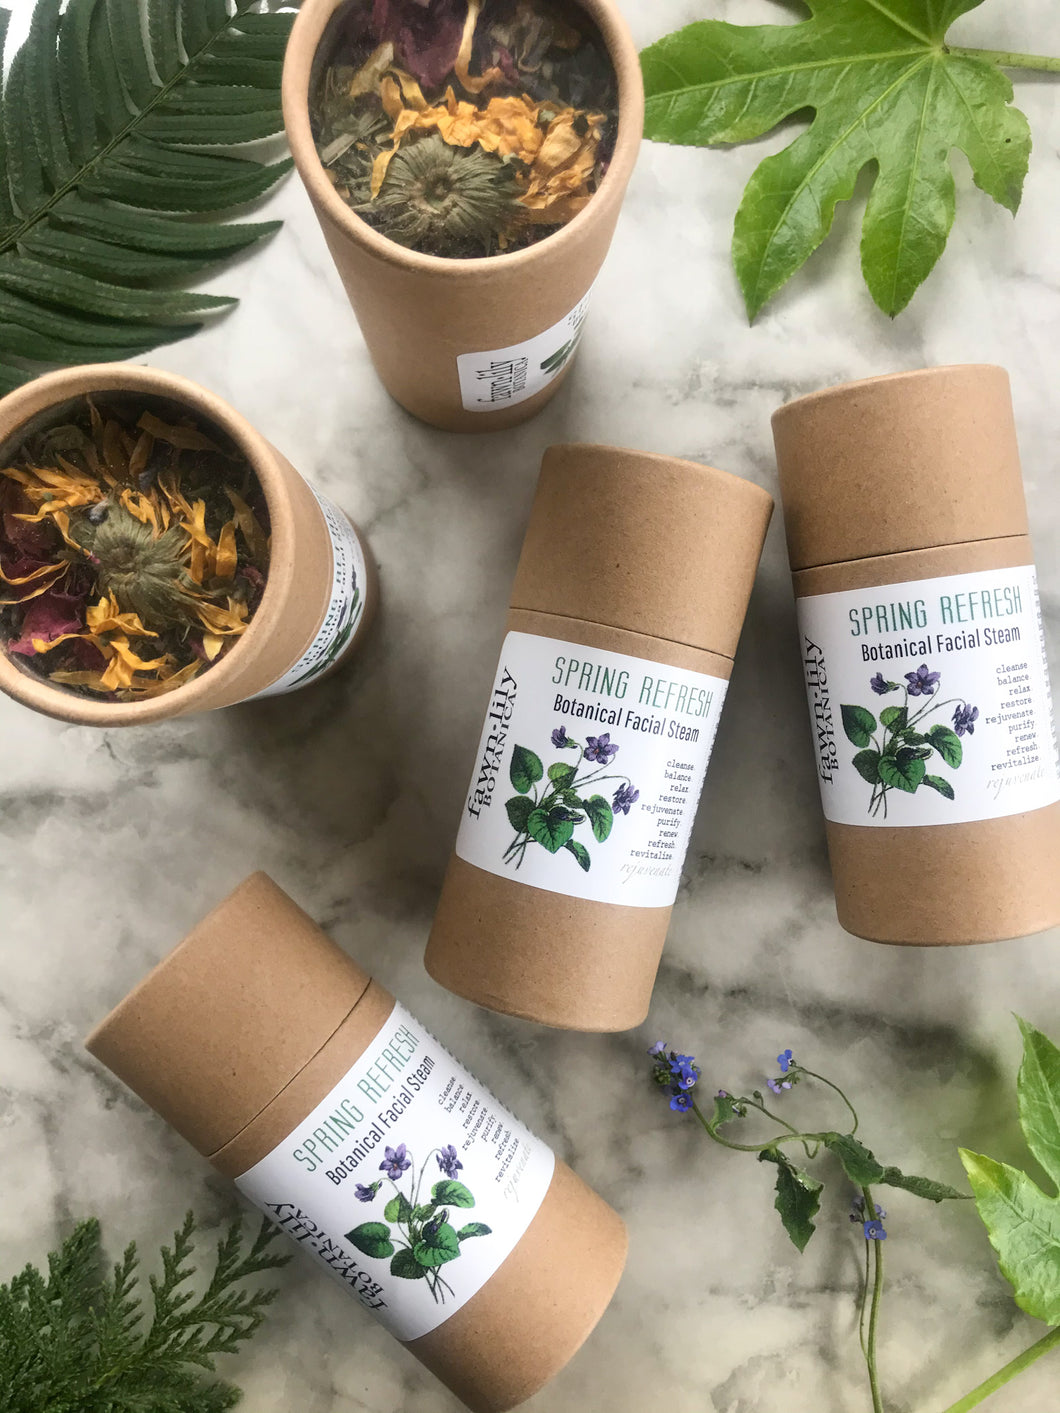 SPRING REFRESH BOTANICAL FACIAL STEAM - LIMITED EDITION!